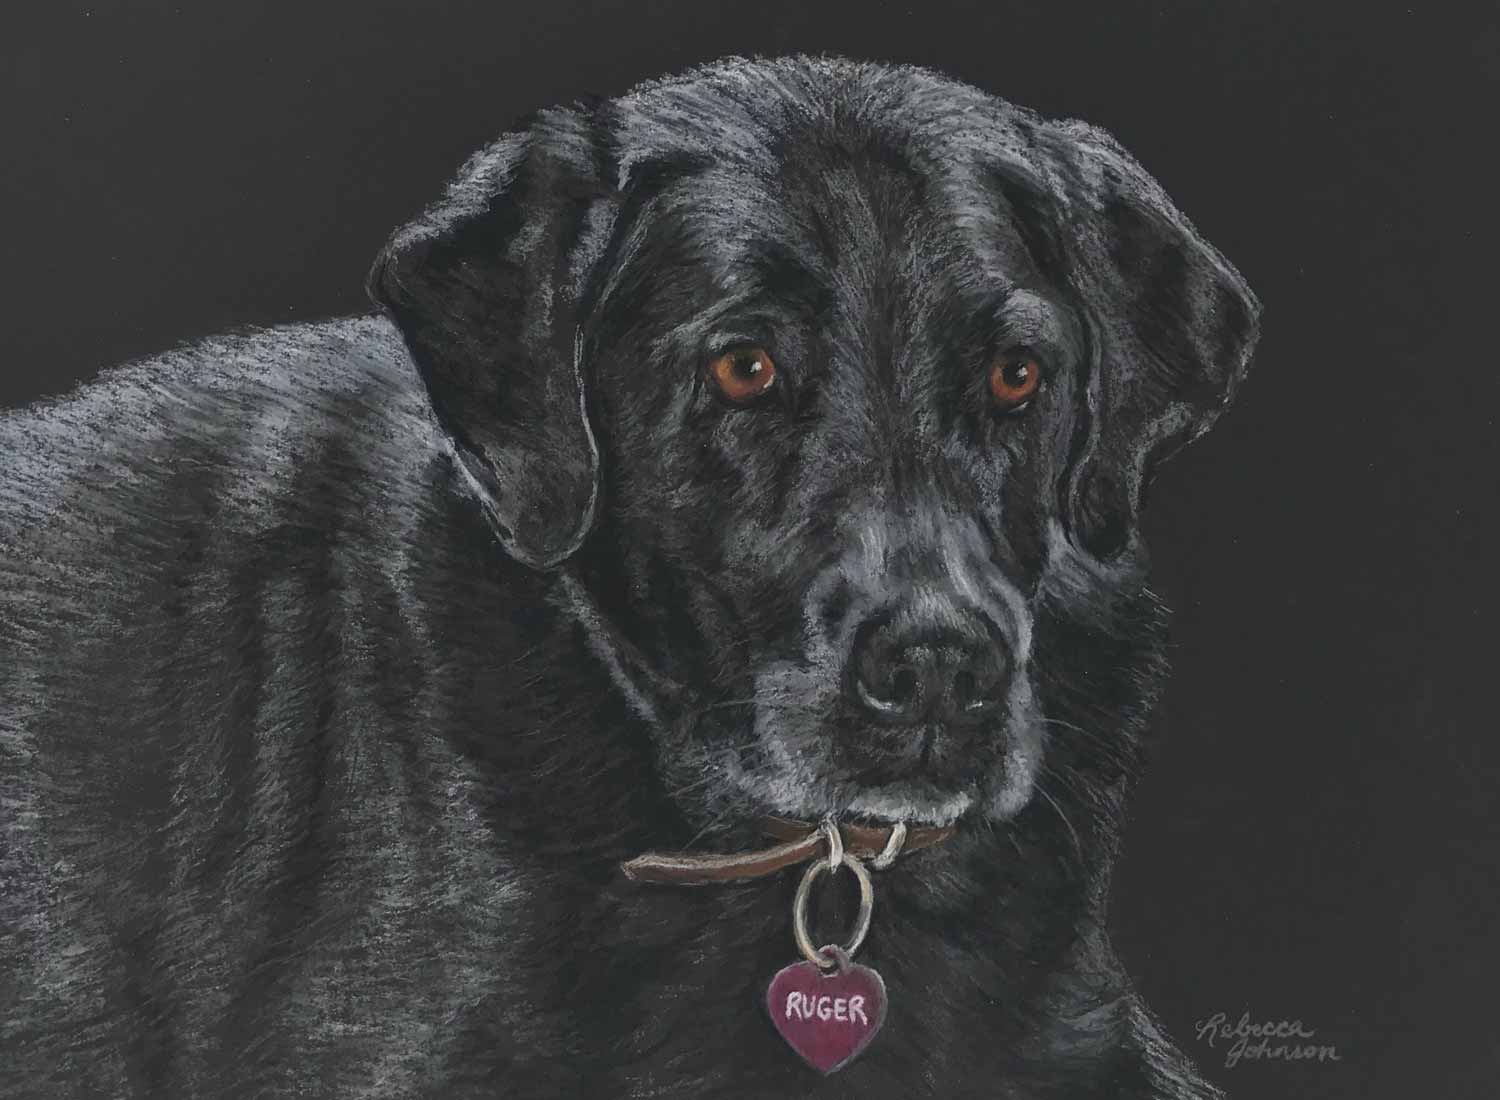 Ruger, Pastel Pencil, 9 x 12